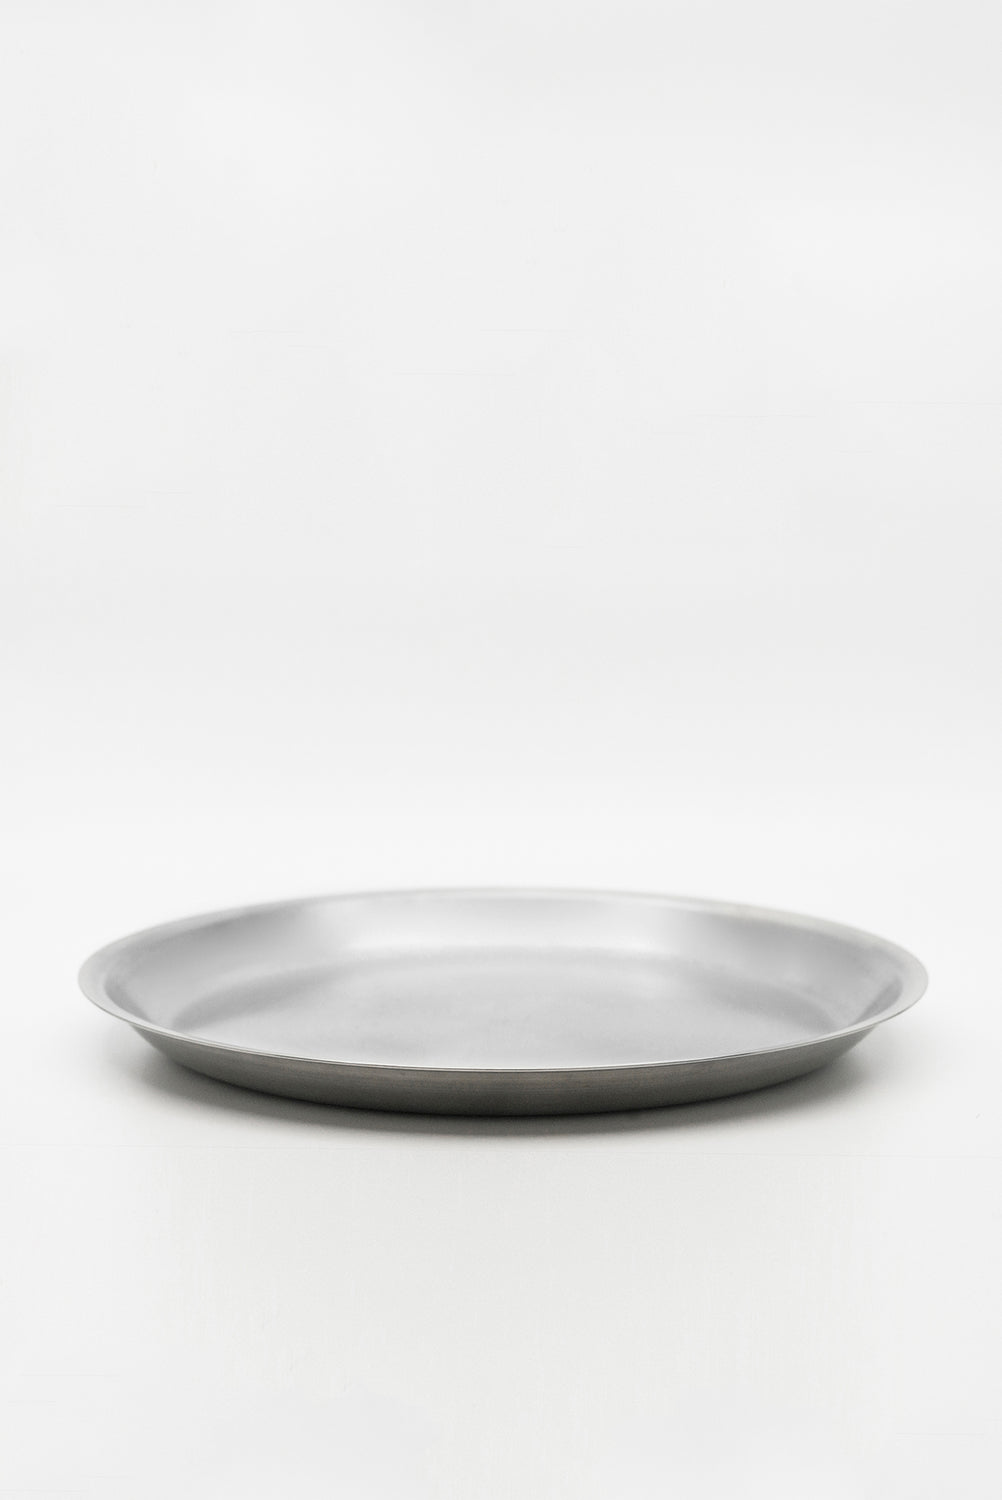 Makanai Stainless Steel Bowl Set Large